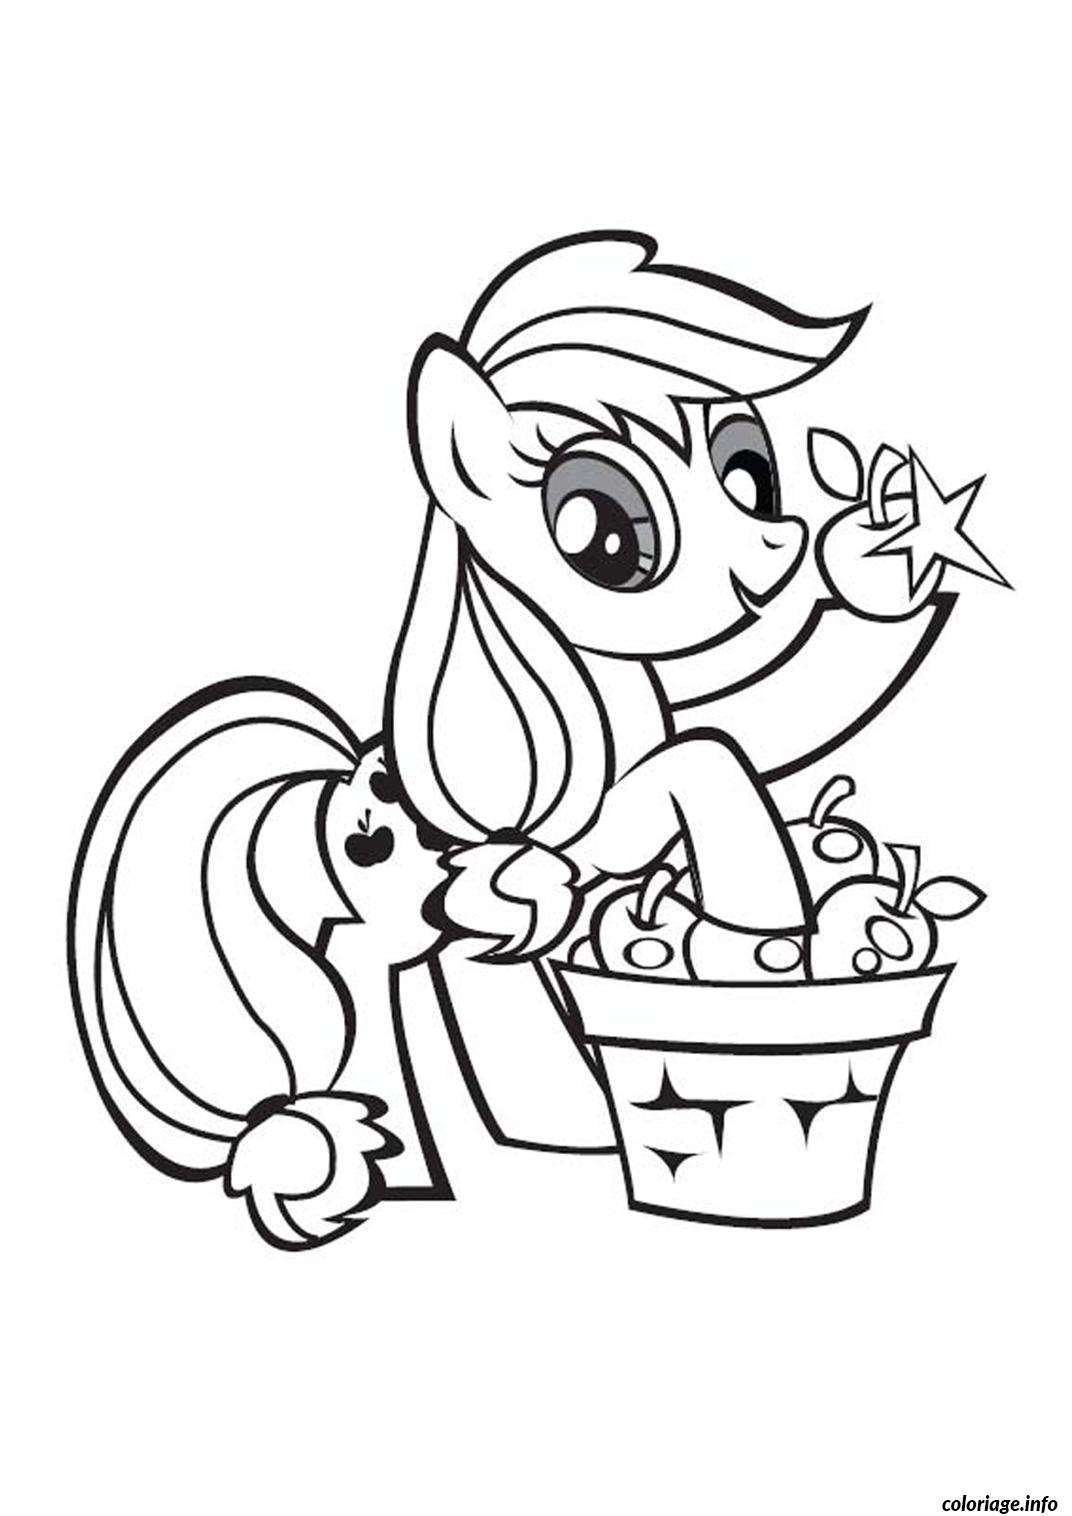 Dessin my little poney 9 Coloriage Gratuit à Imprimer